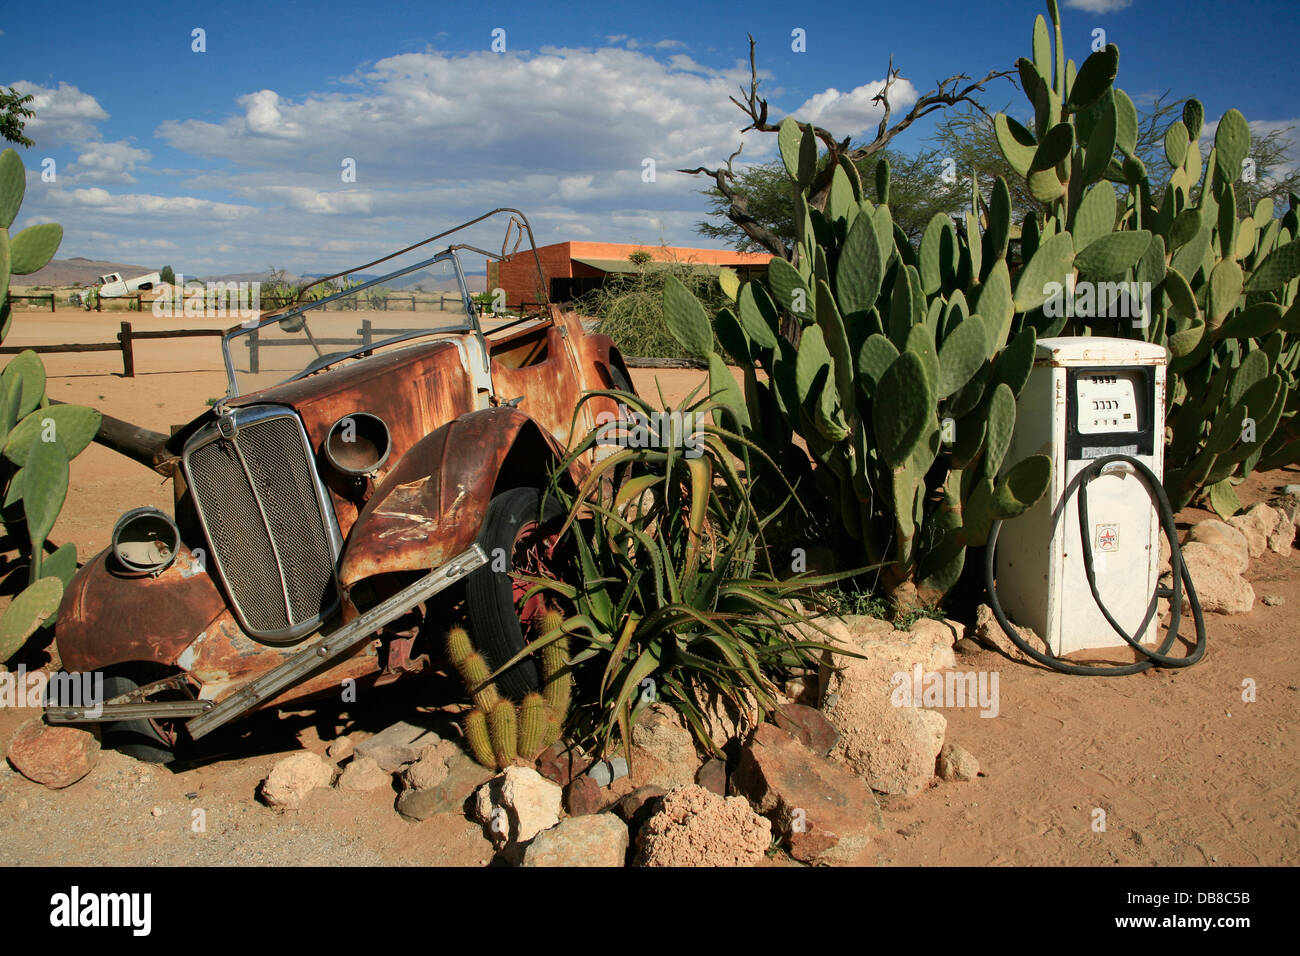 rusted car at run down petrol station, Solitaire, Namibia - Stock Image